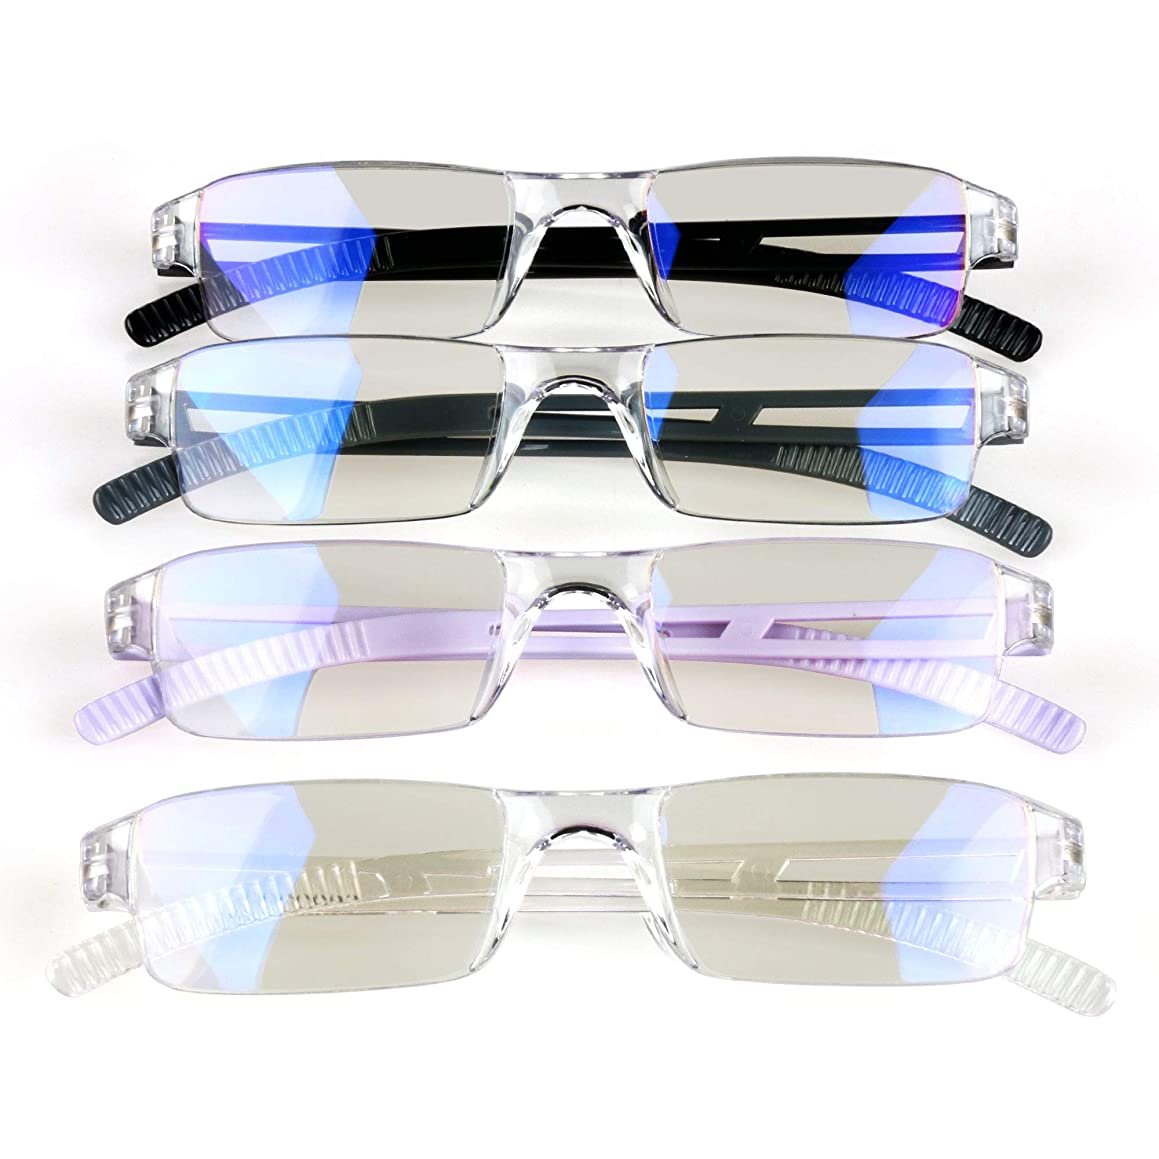 4 Pack Blue Light Blocking Glasses,Clear Vision Reading Glasses with Multi-Magnification,Daily Use for Women/Men (+1.50 Magnification, 4Color)